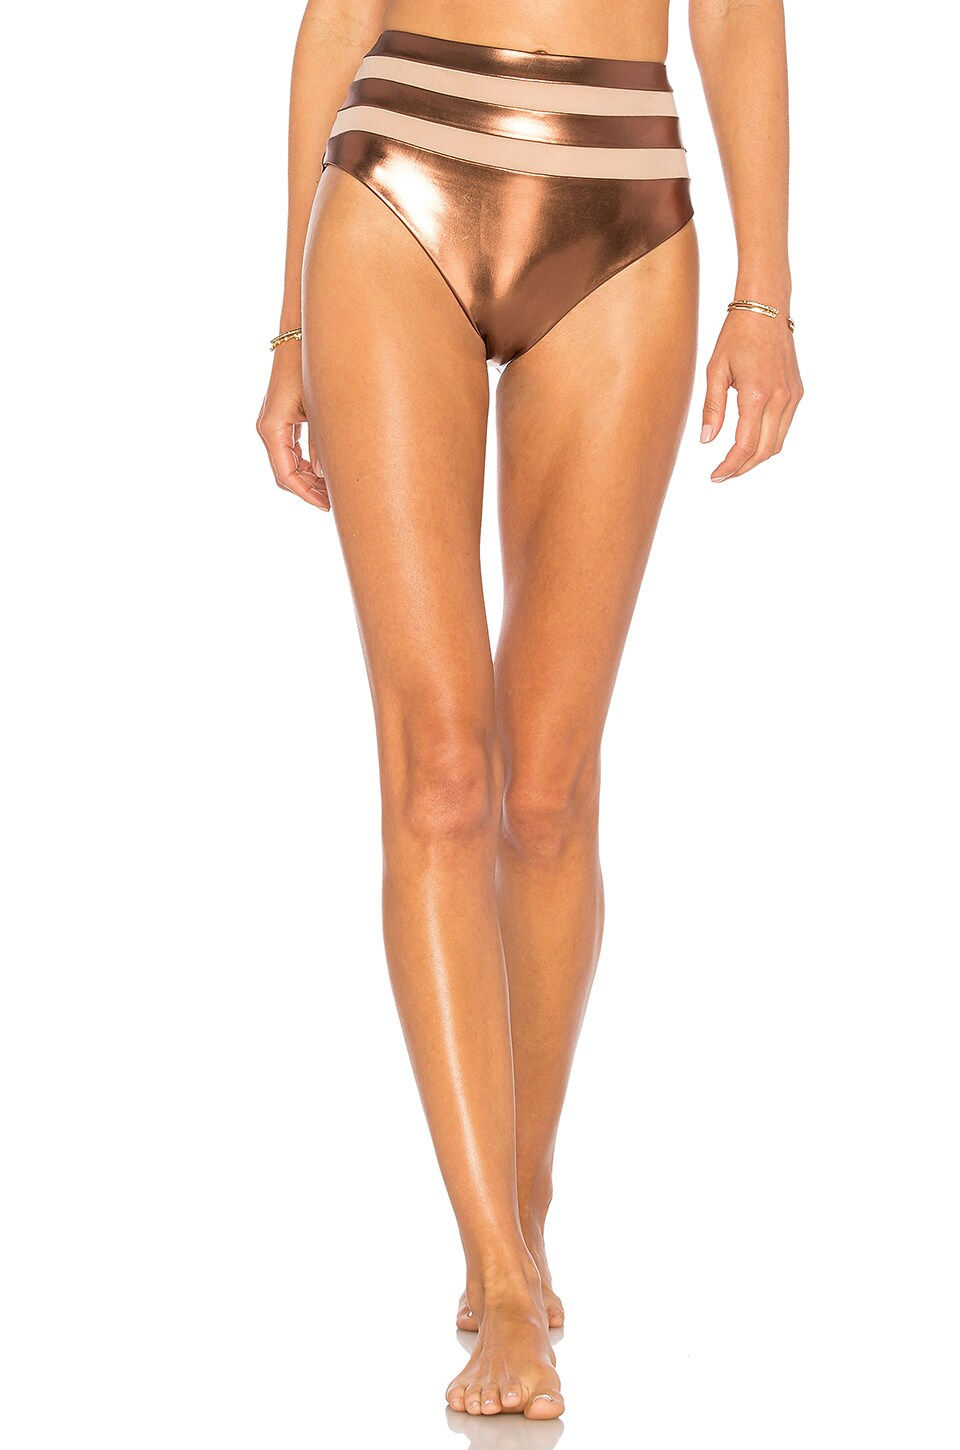 Lovers + Friends x REVOLVE In My Head High-Waisted Bottom in Metallic